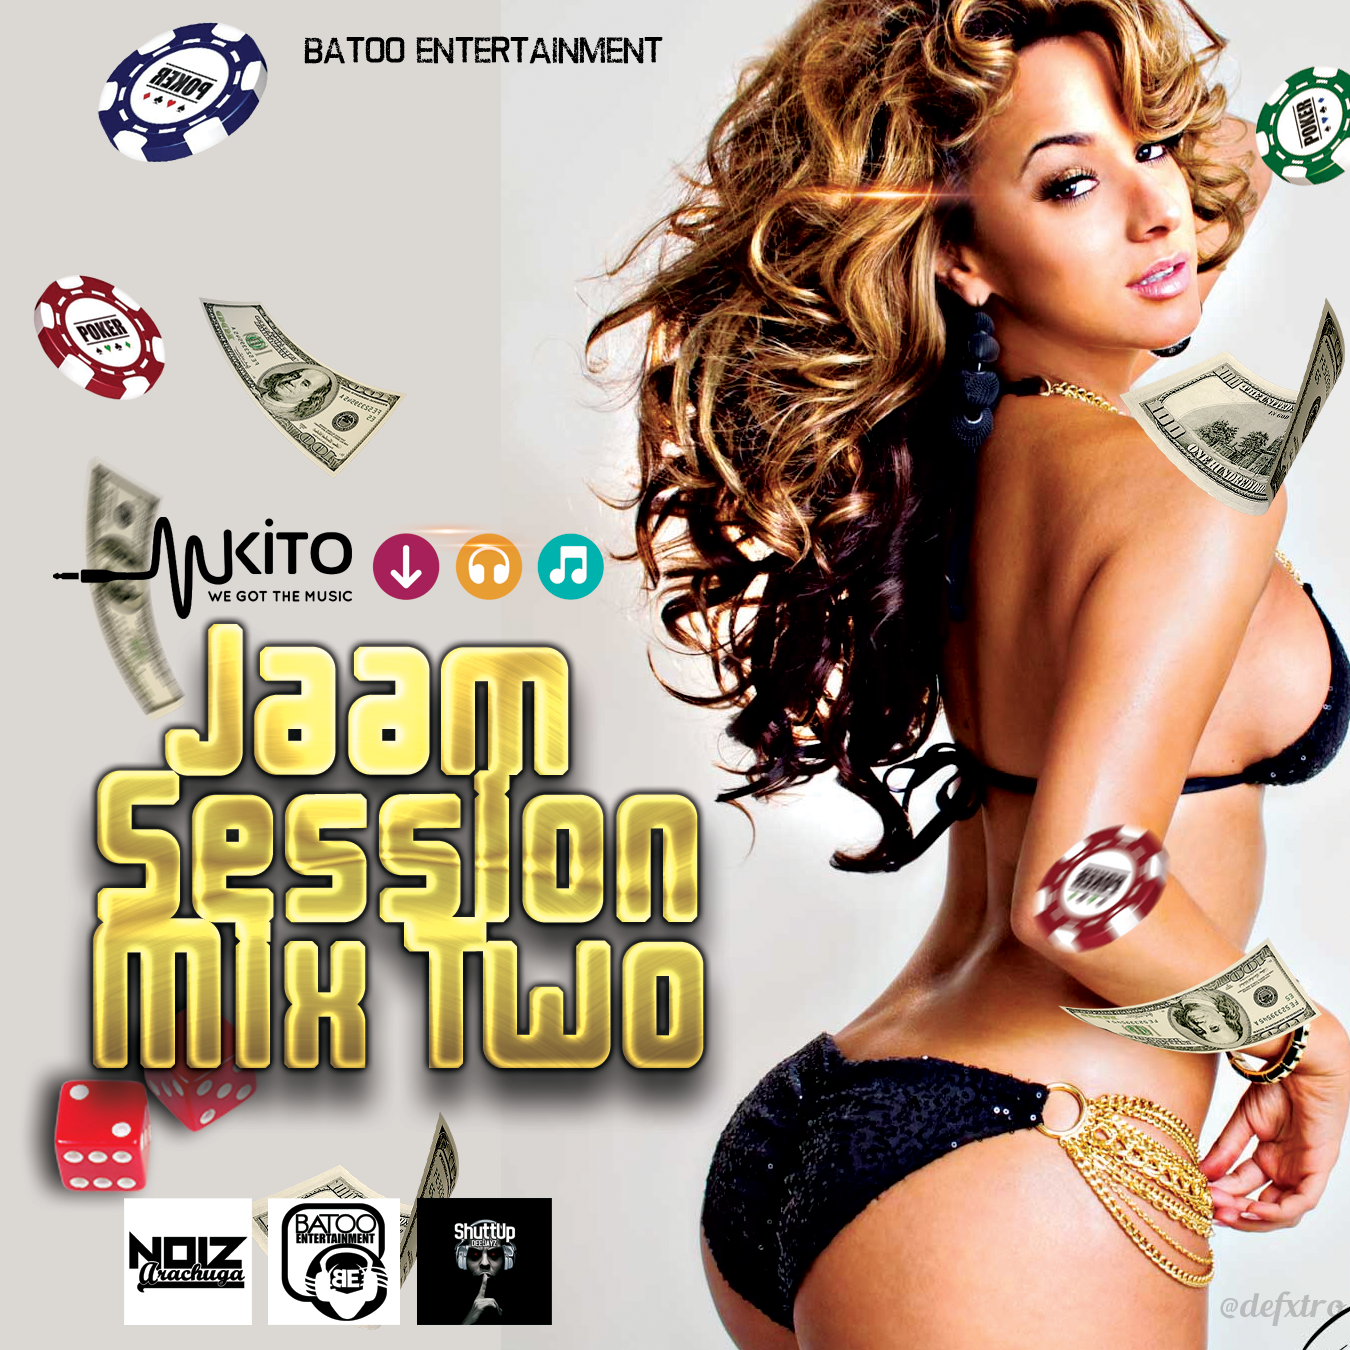 Batoo - 1 JaamSess_Mix Two